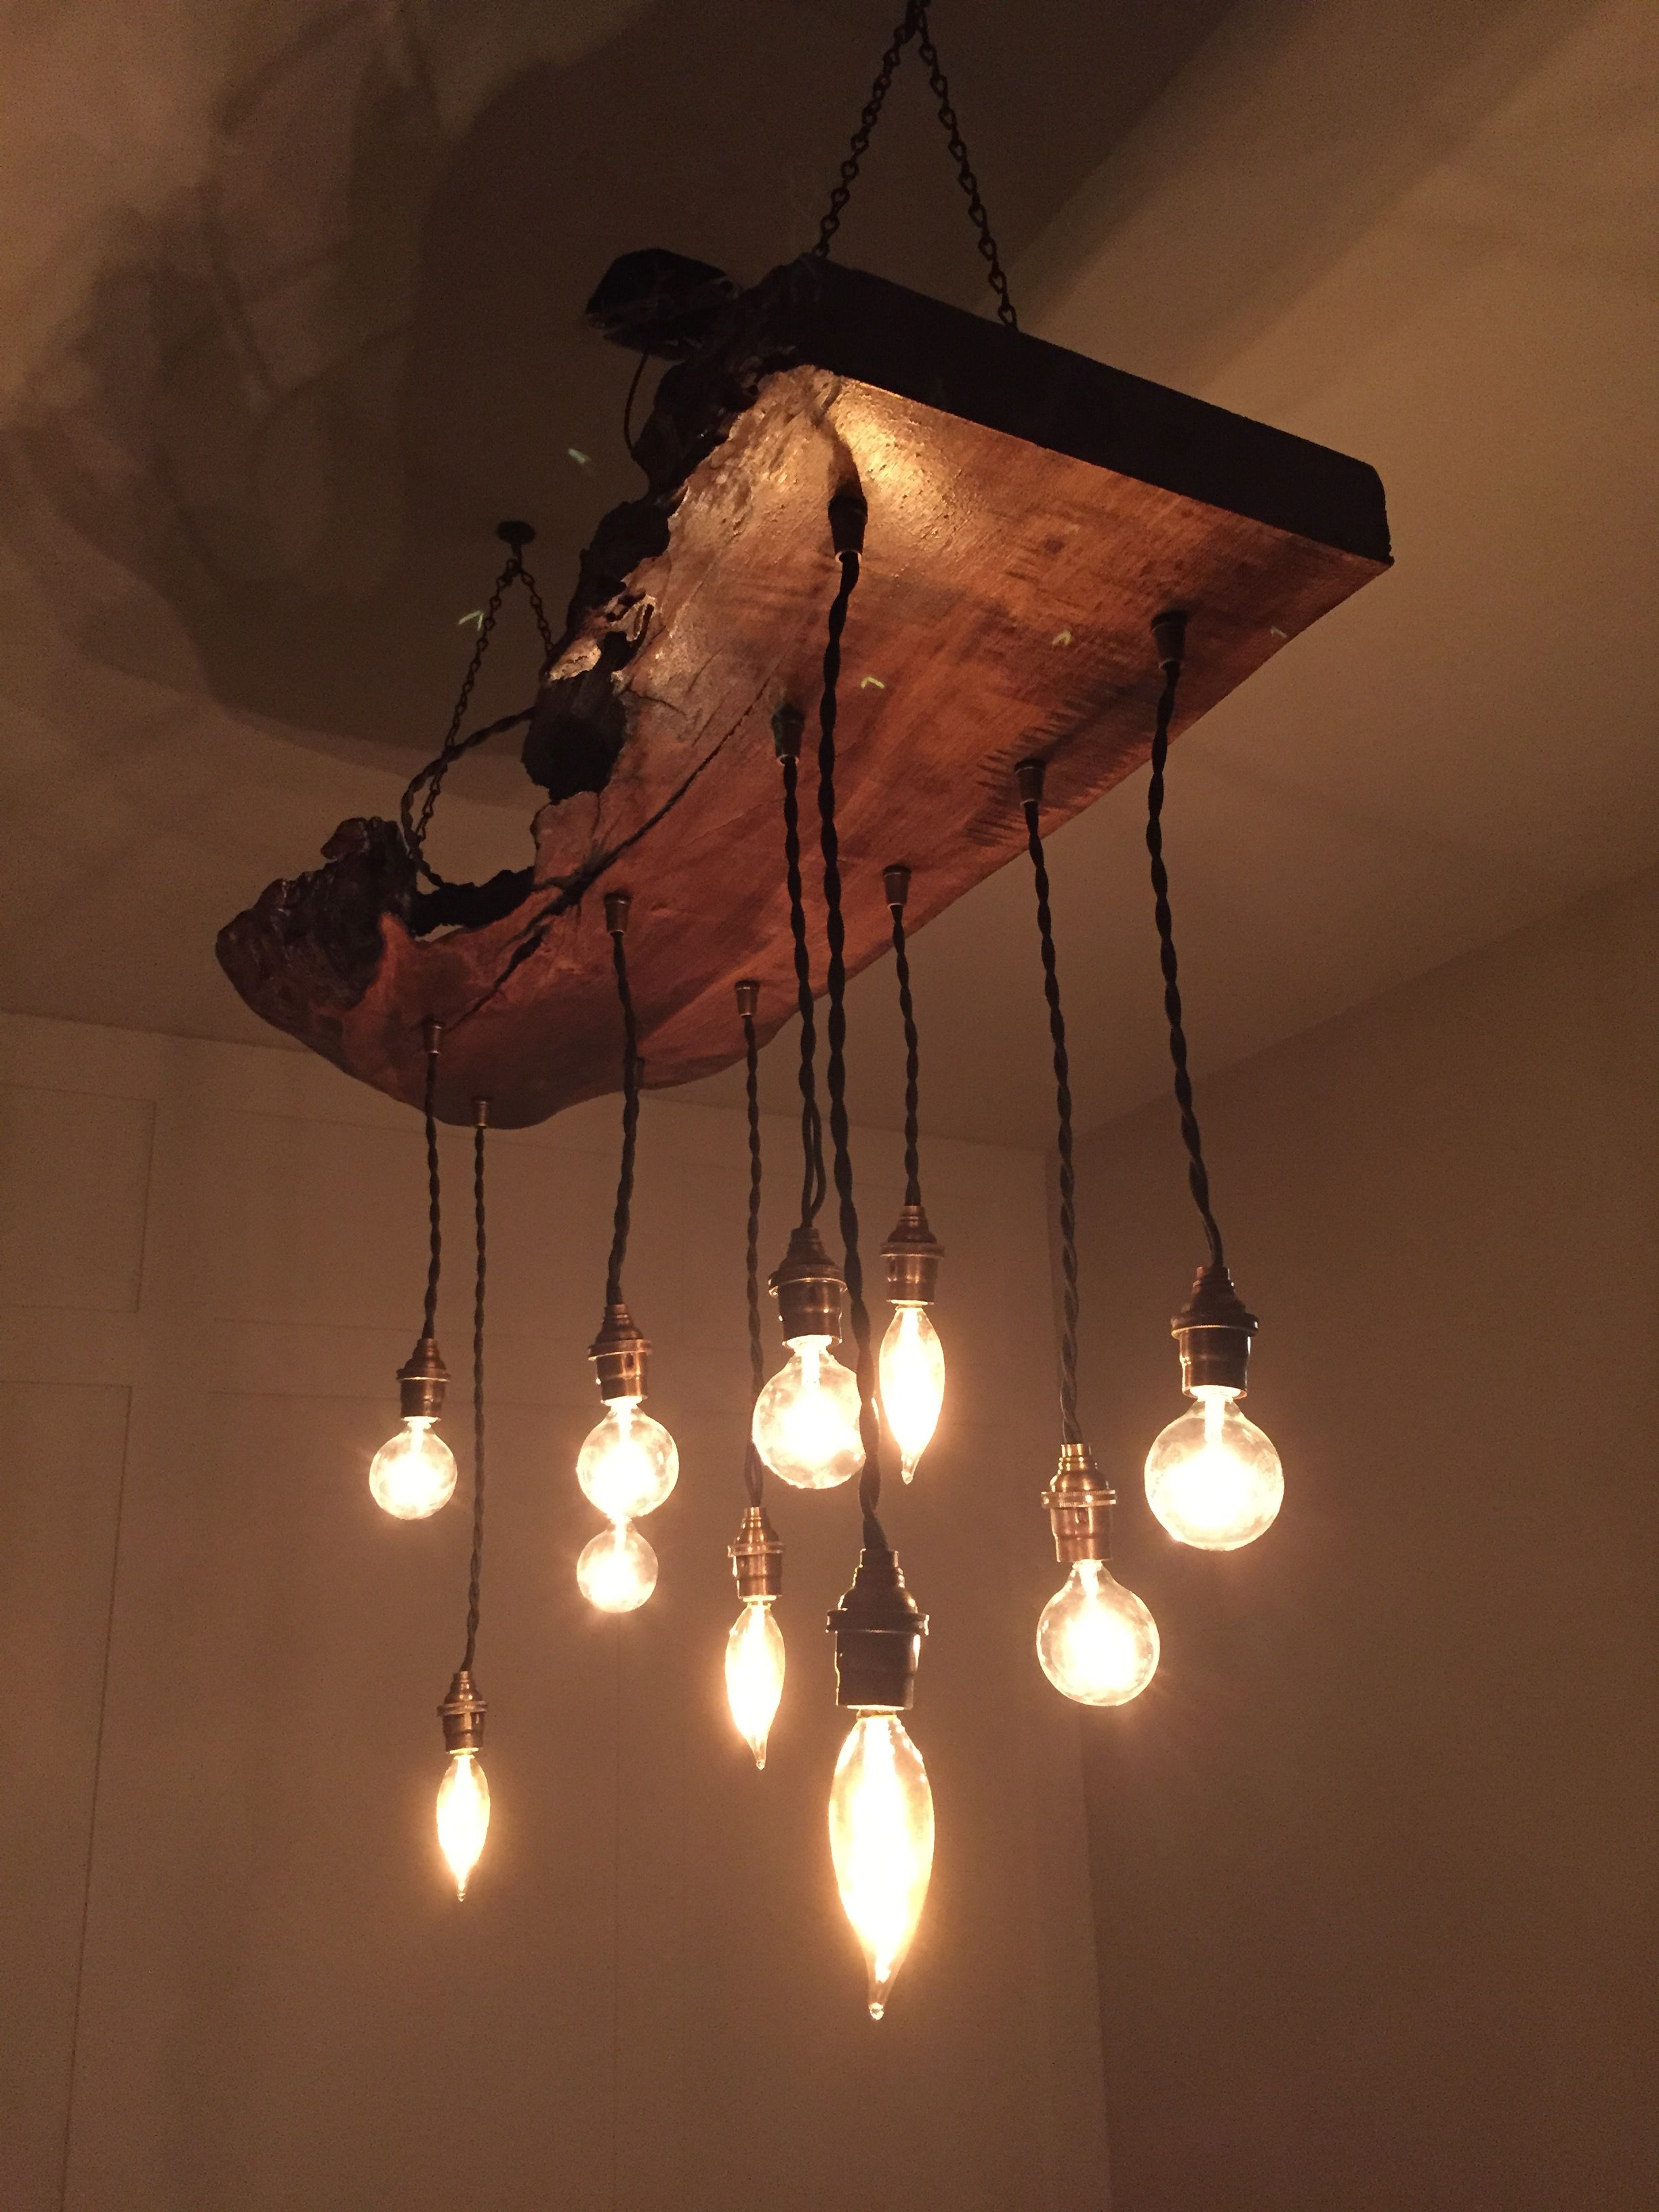 Dining Room Light Fixture Diy Reclaimed Wood Edison Bulbs Hanging Wood Lamps Diy Light Fixtures Hanging Light Fixtures